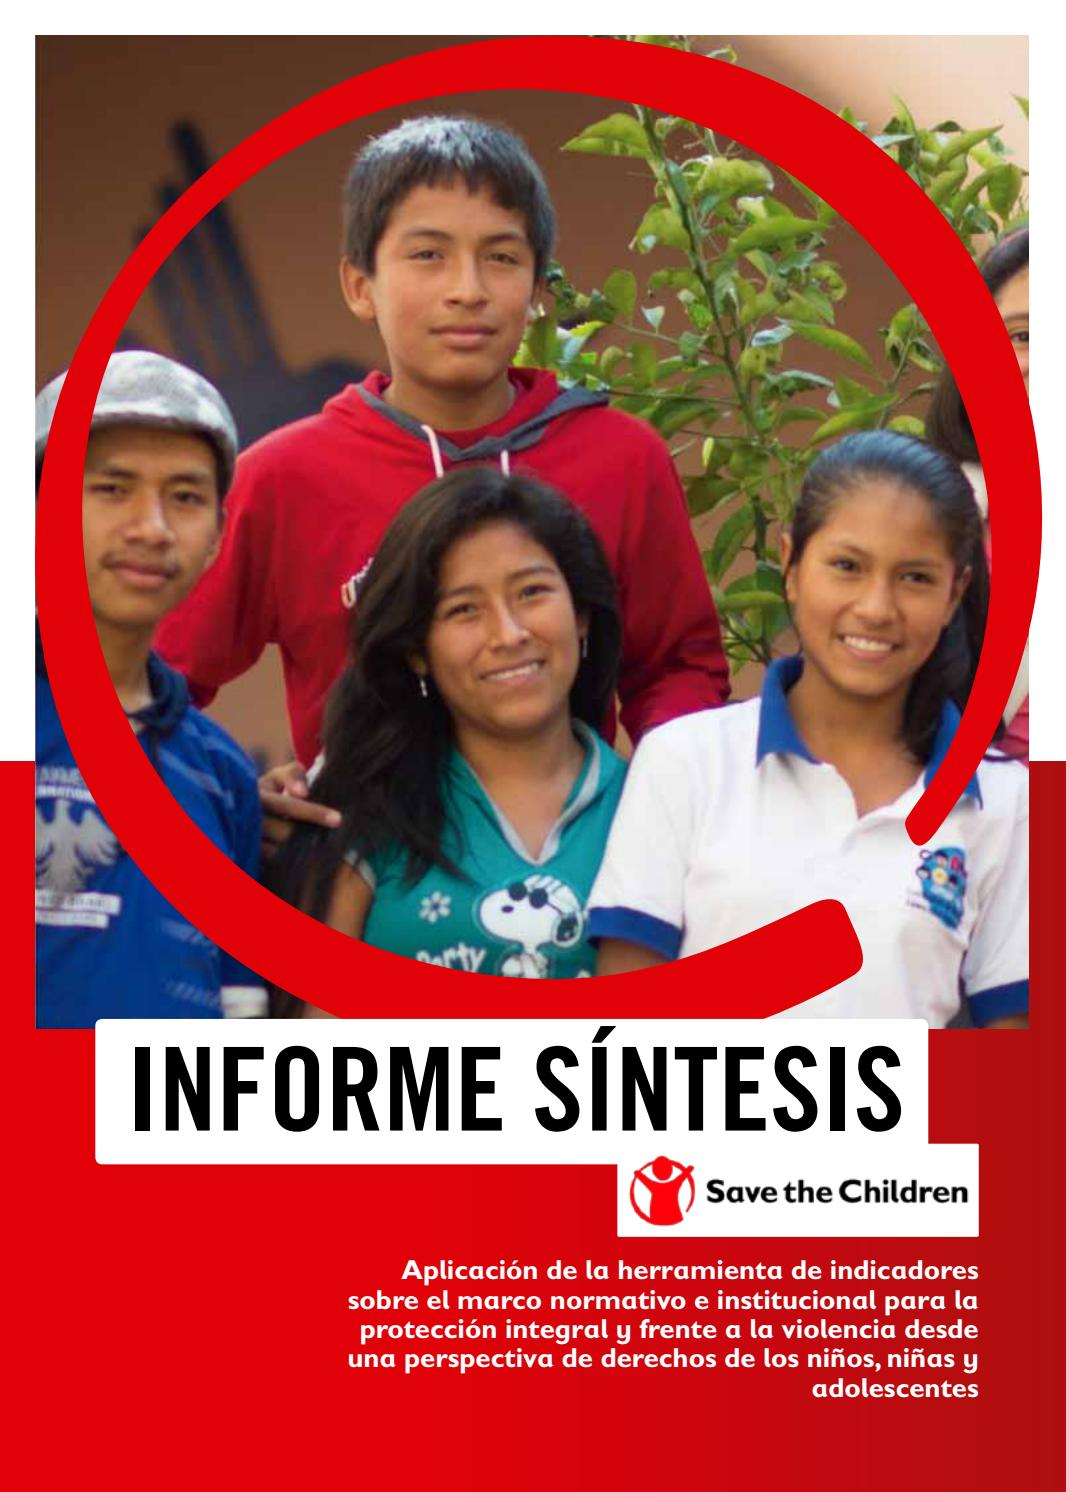 Informe Síntesis Final by Save the Children - issuu